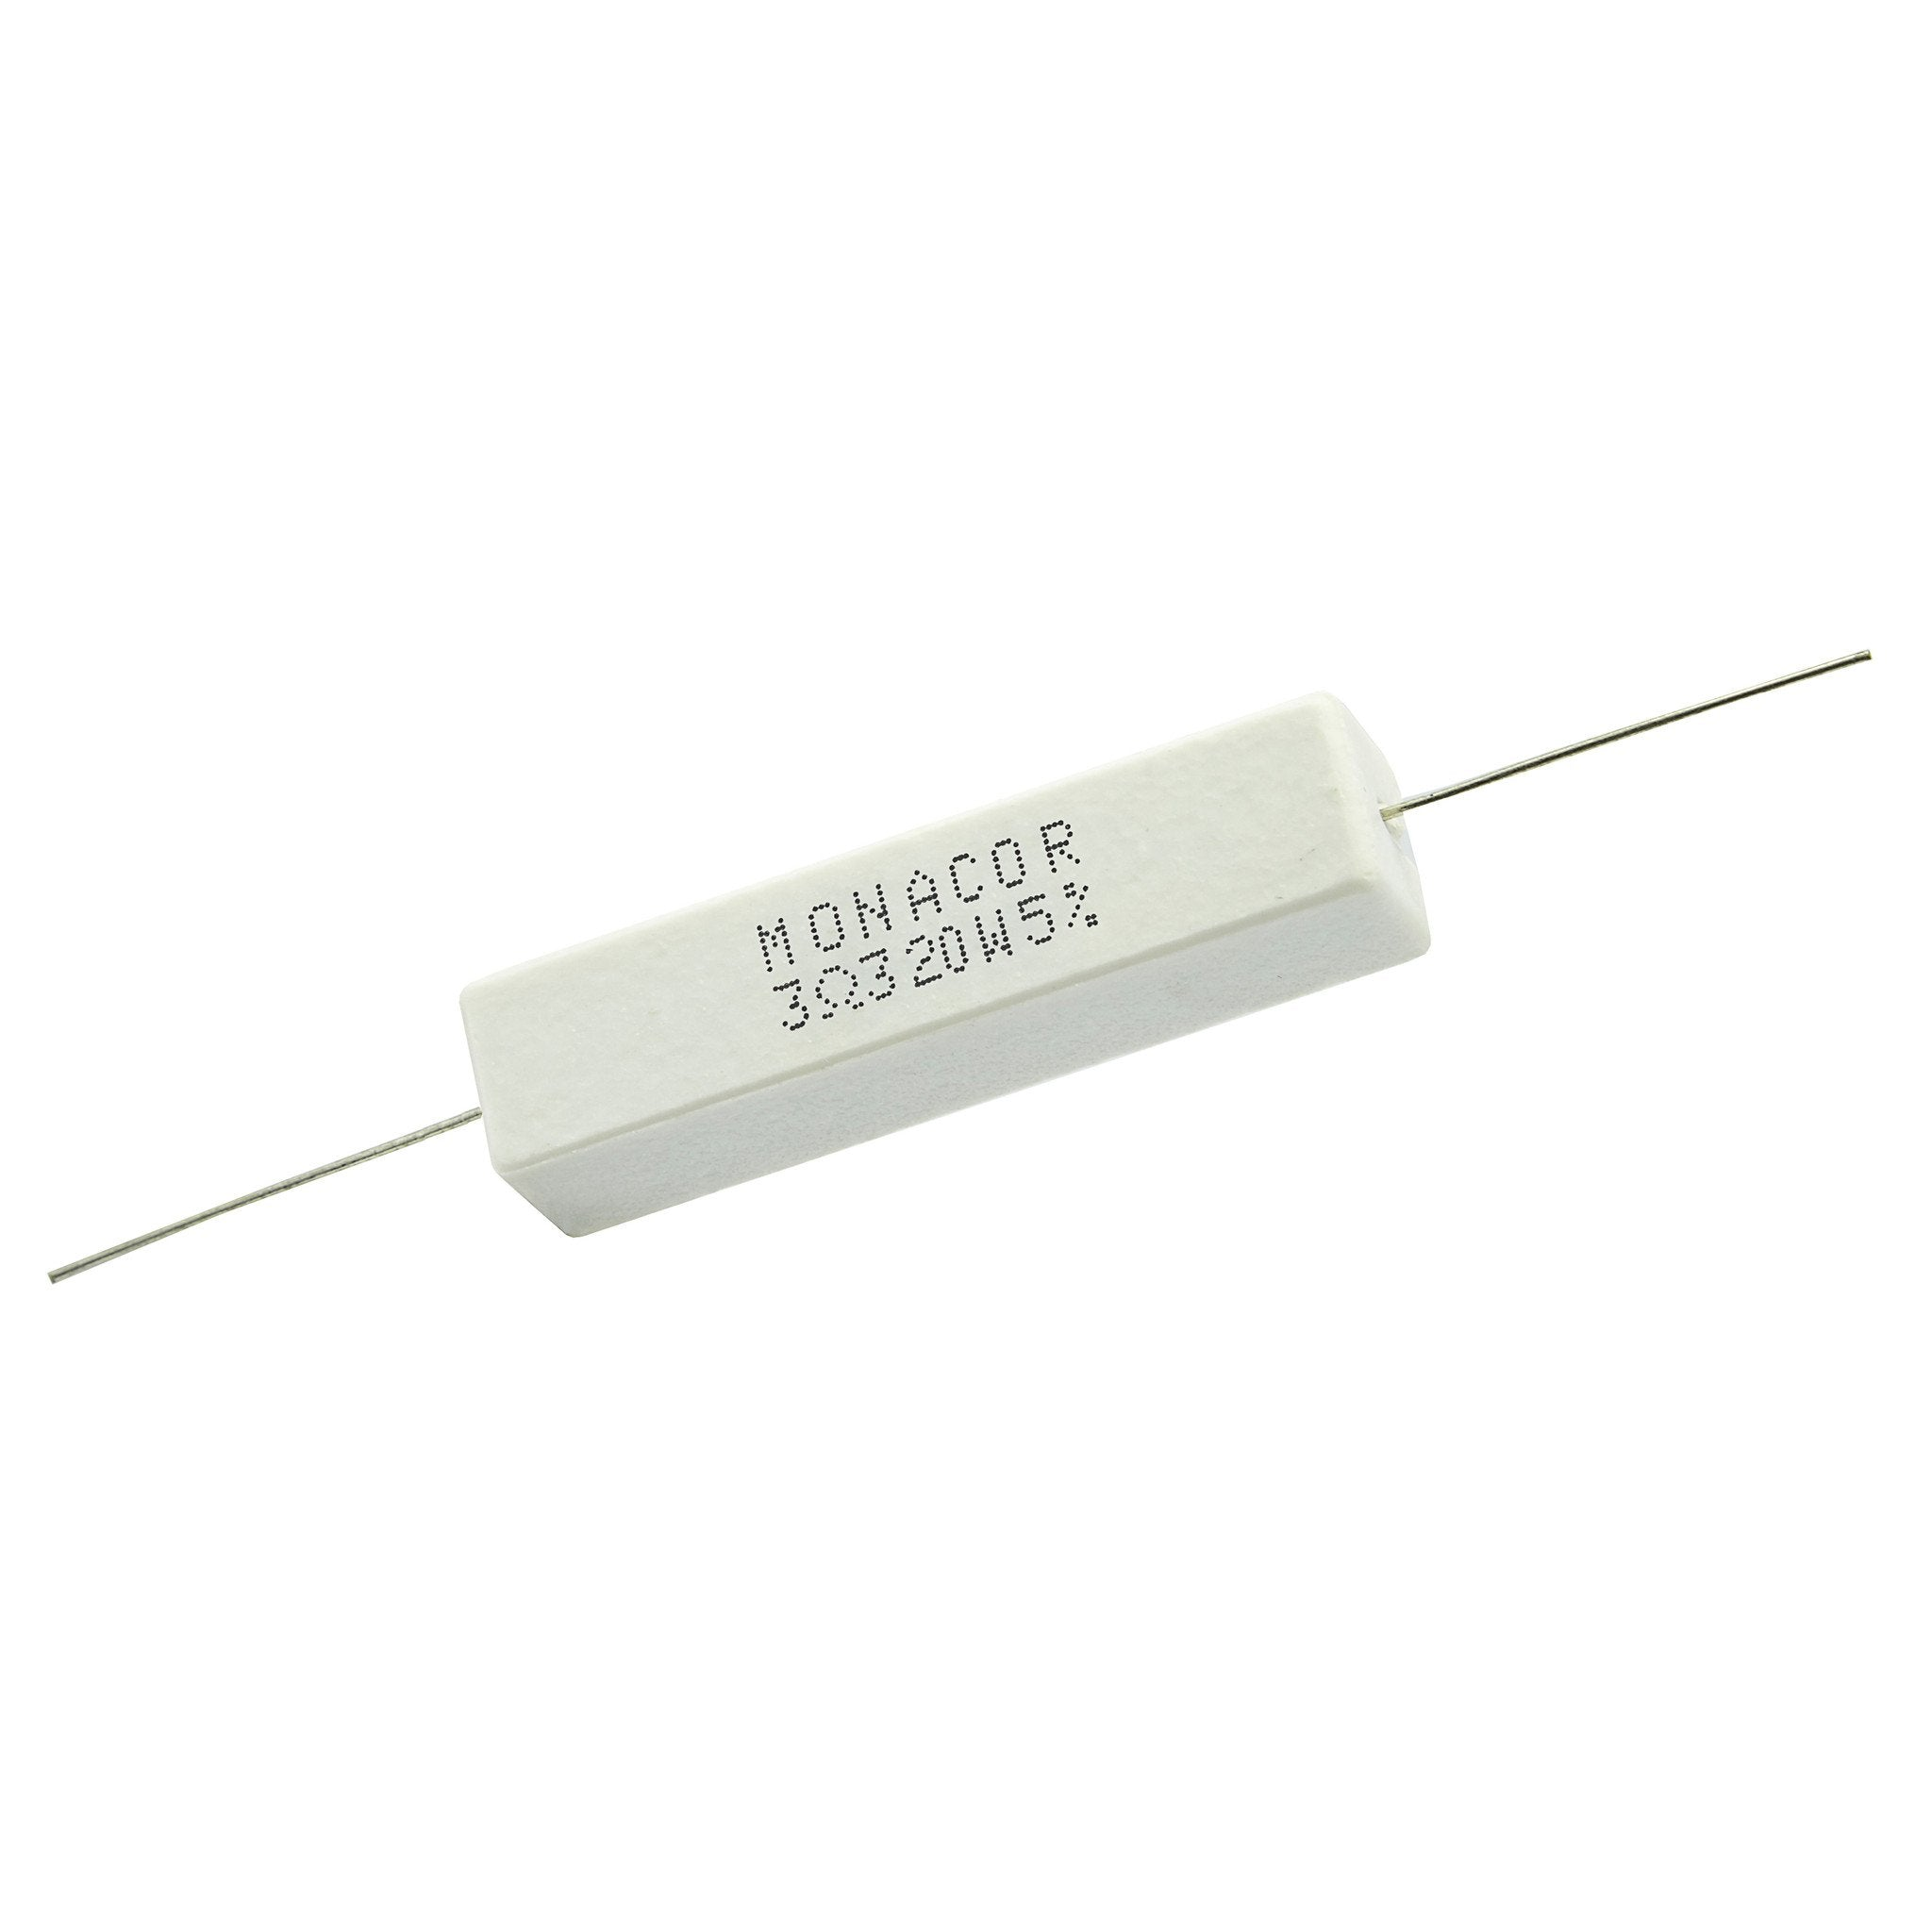 3.3 Ohm 20 Watt 5% Ceramic Wirewound Resistor - Willys-Hifi Ltd